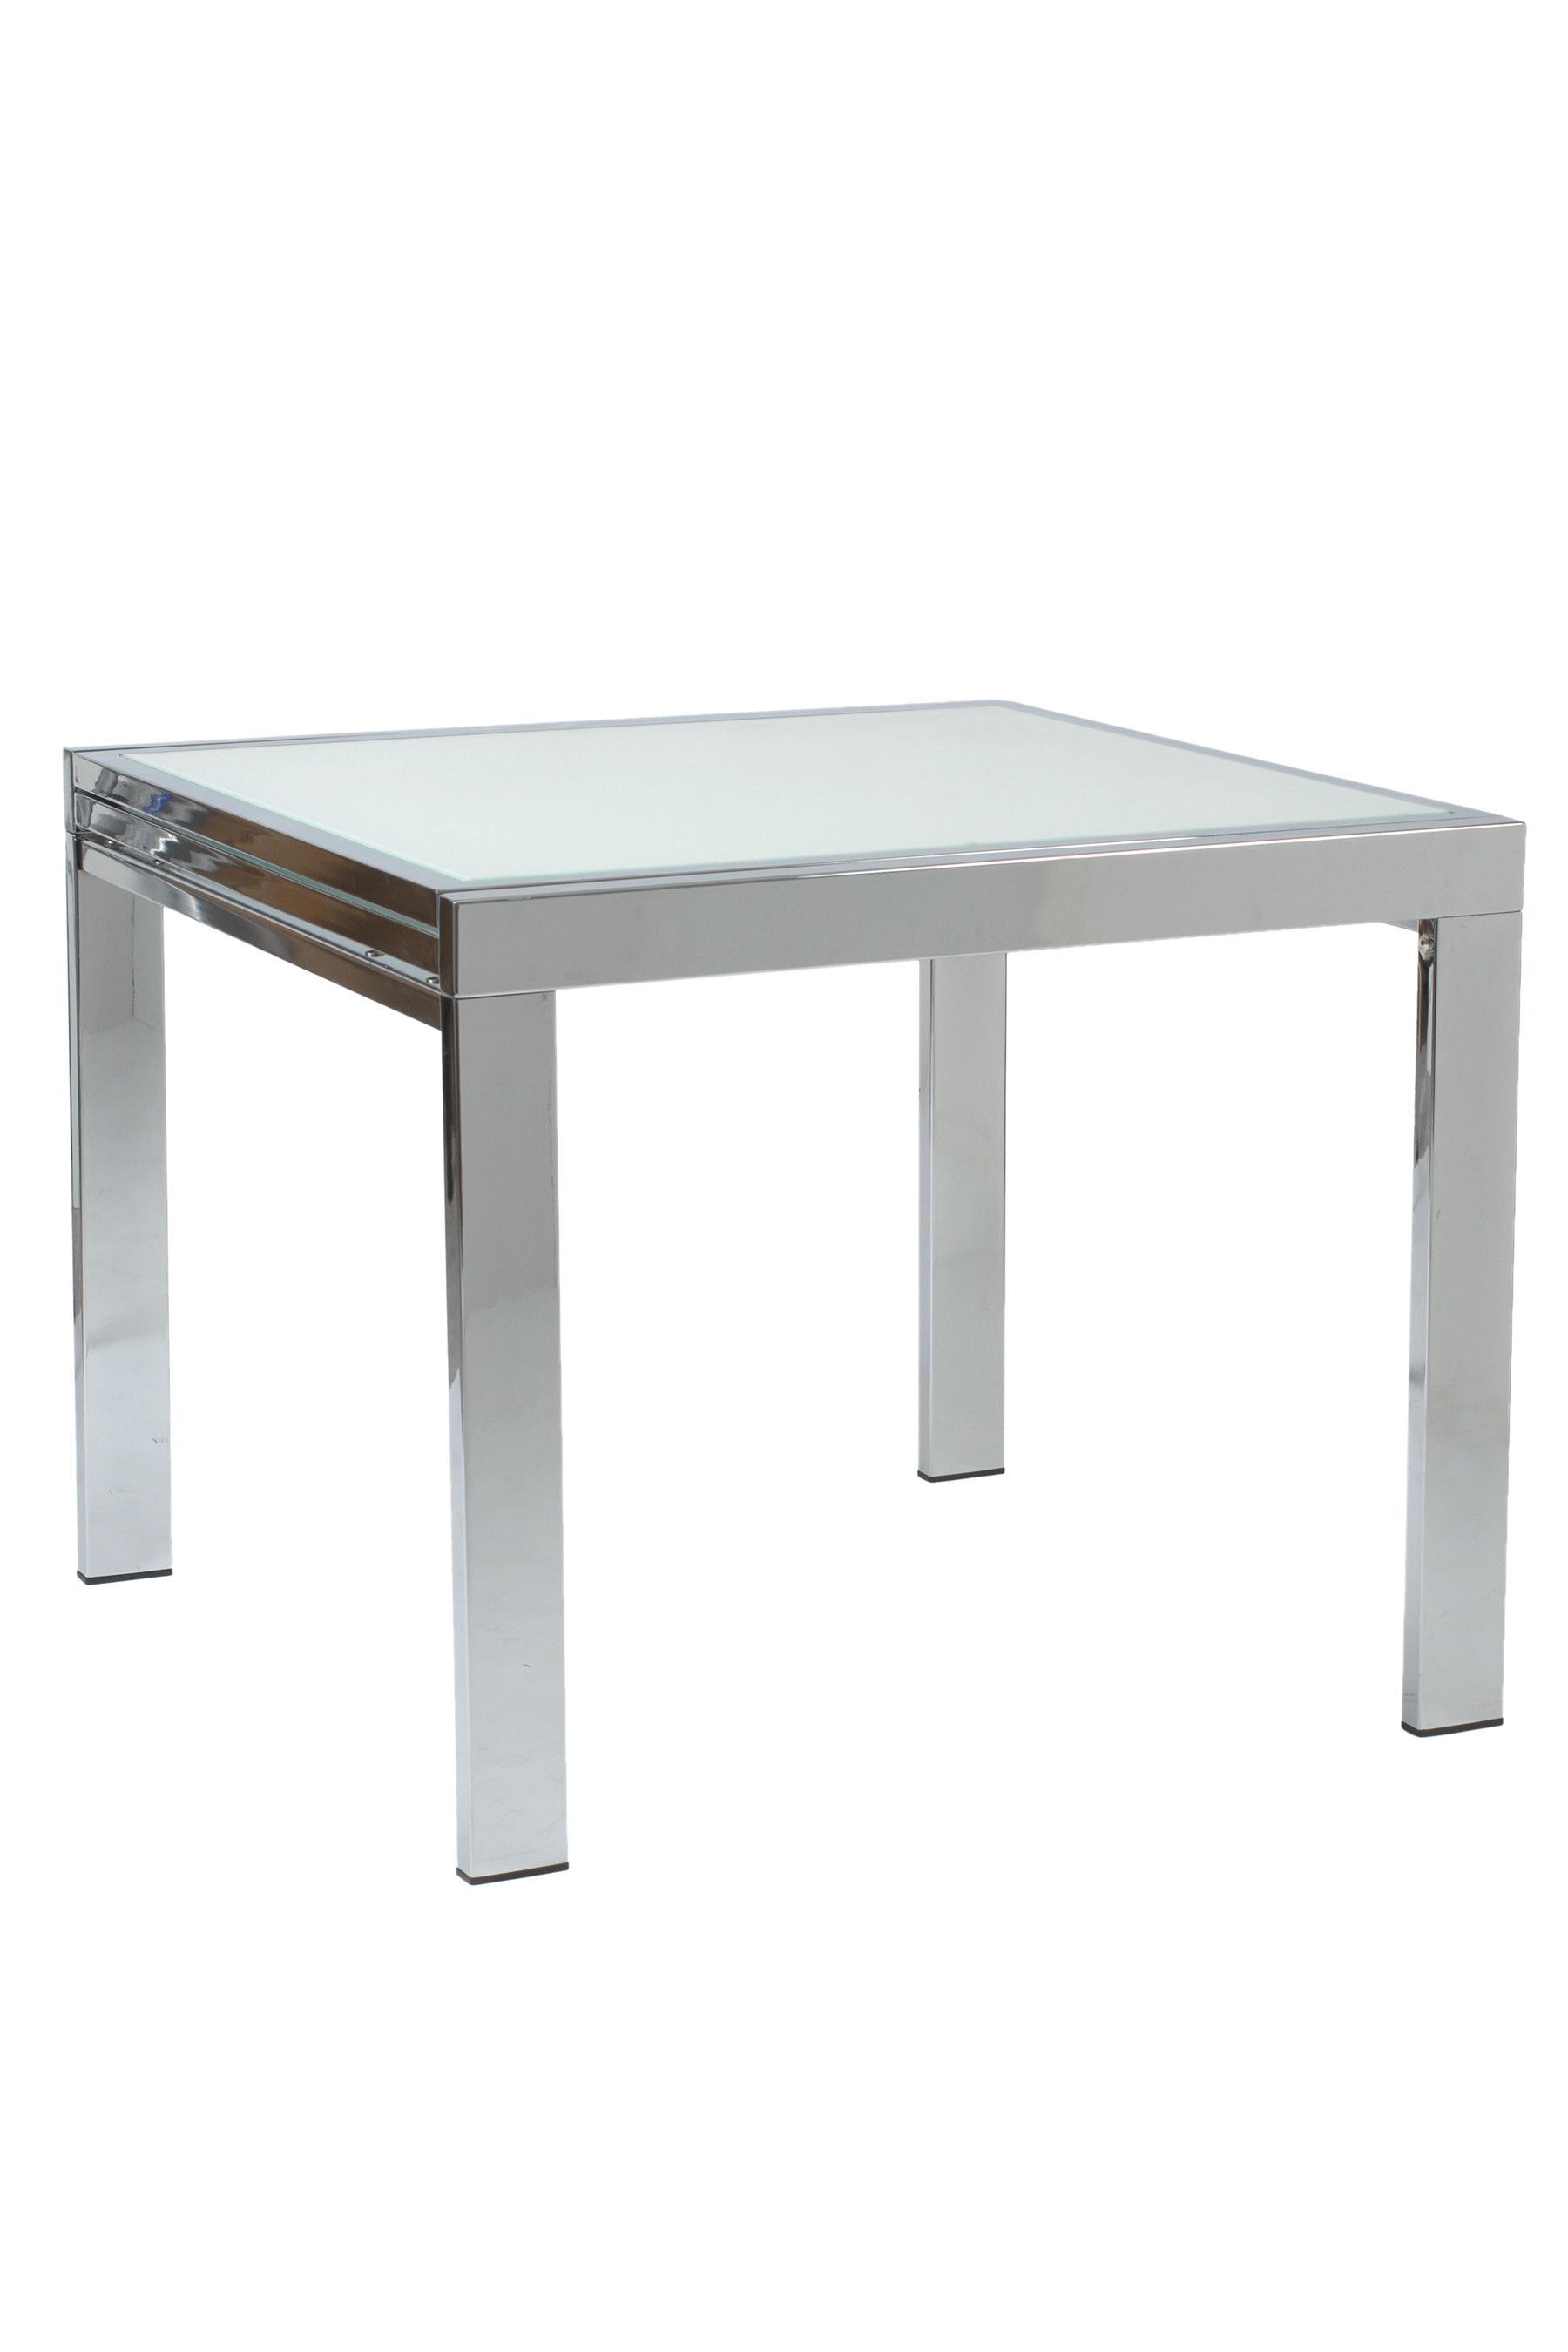 Duo Square Extension Dining Table With Frosted Glass Top And Chrome Base